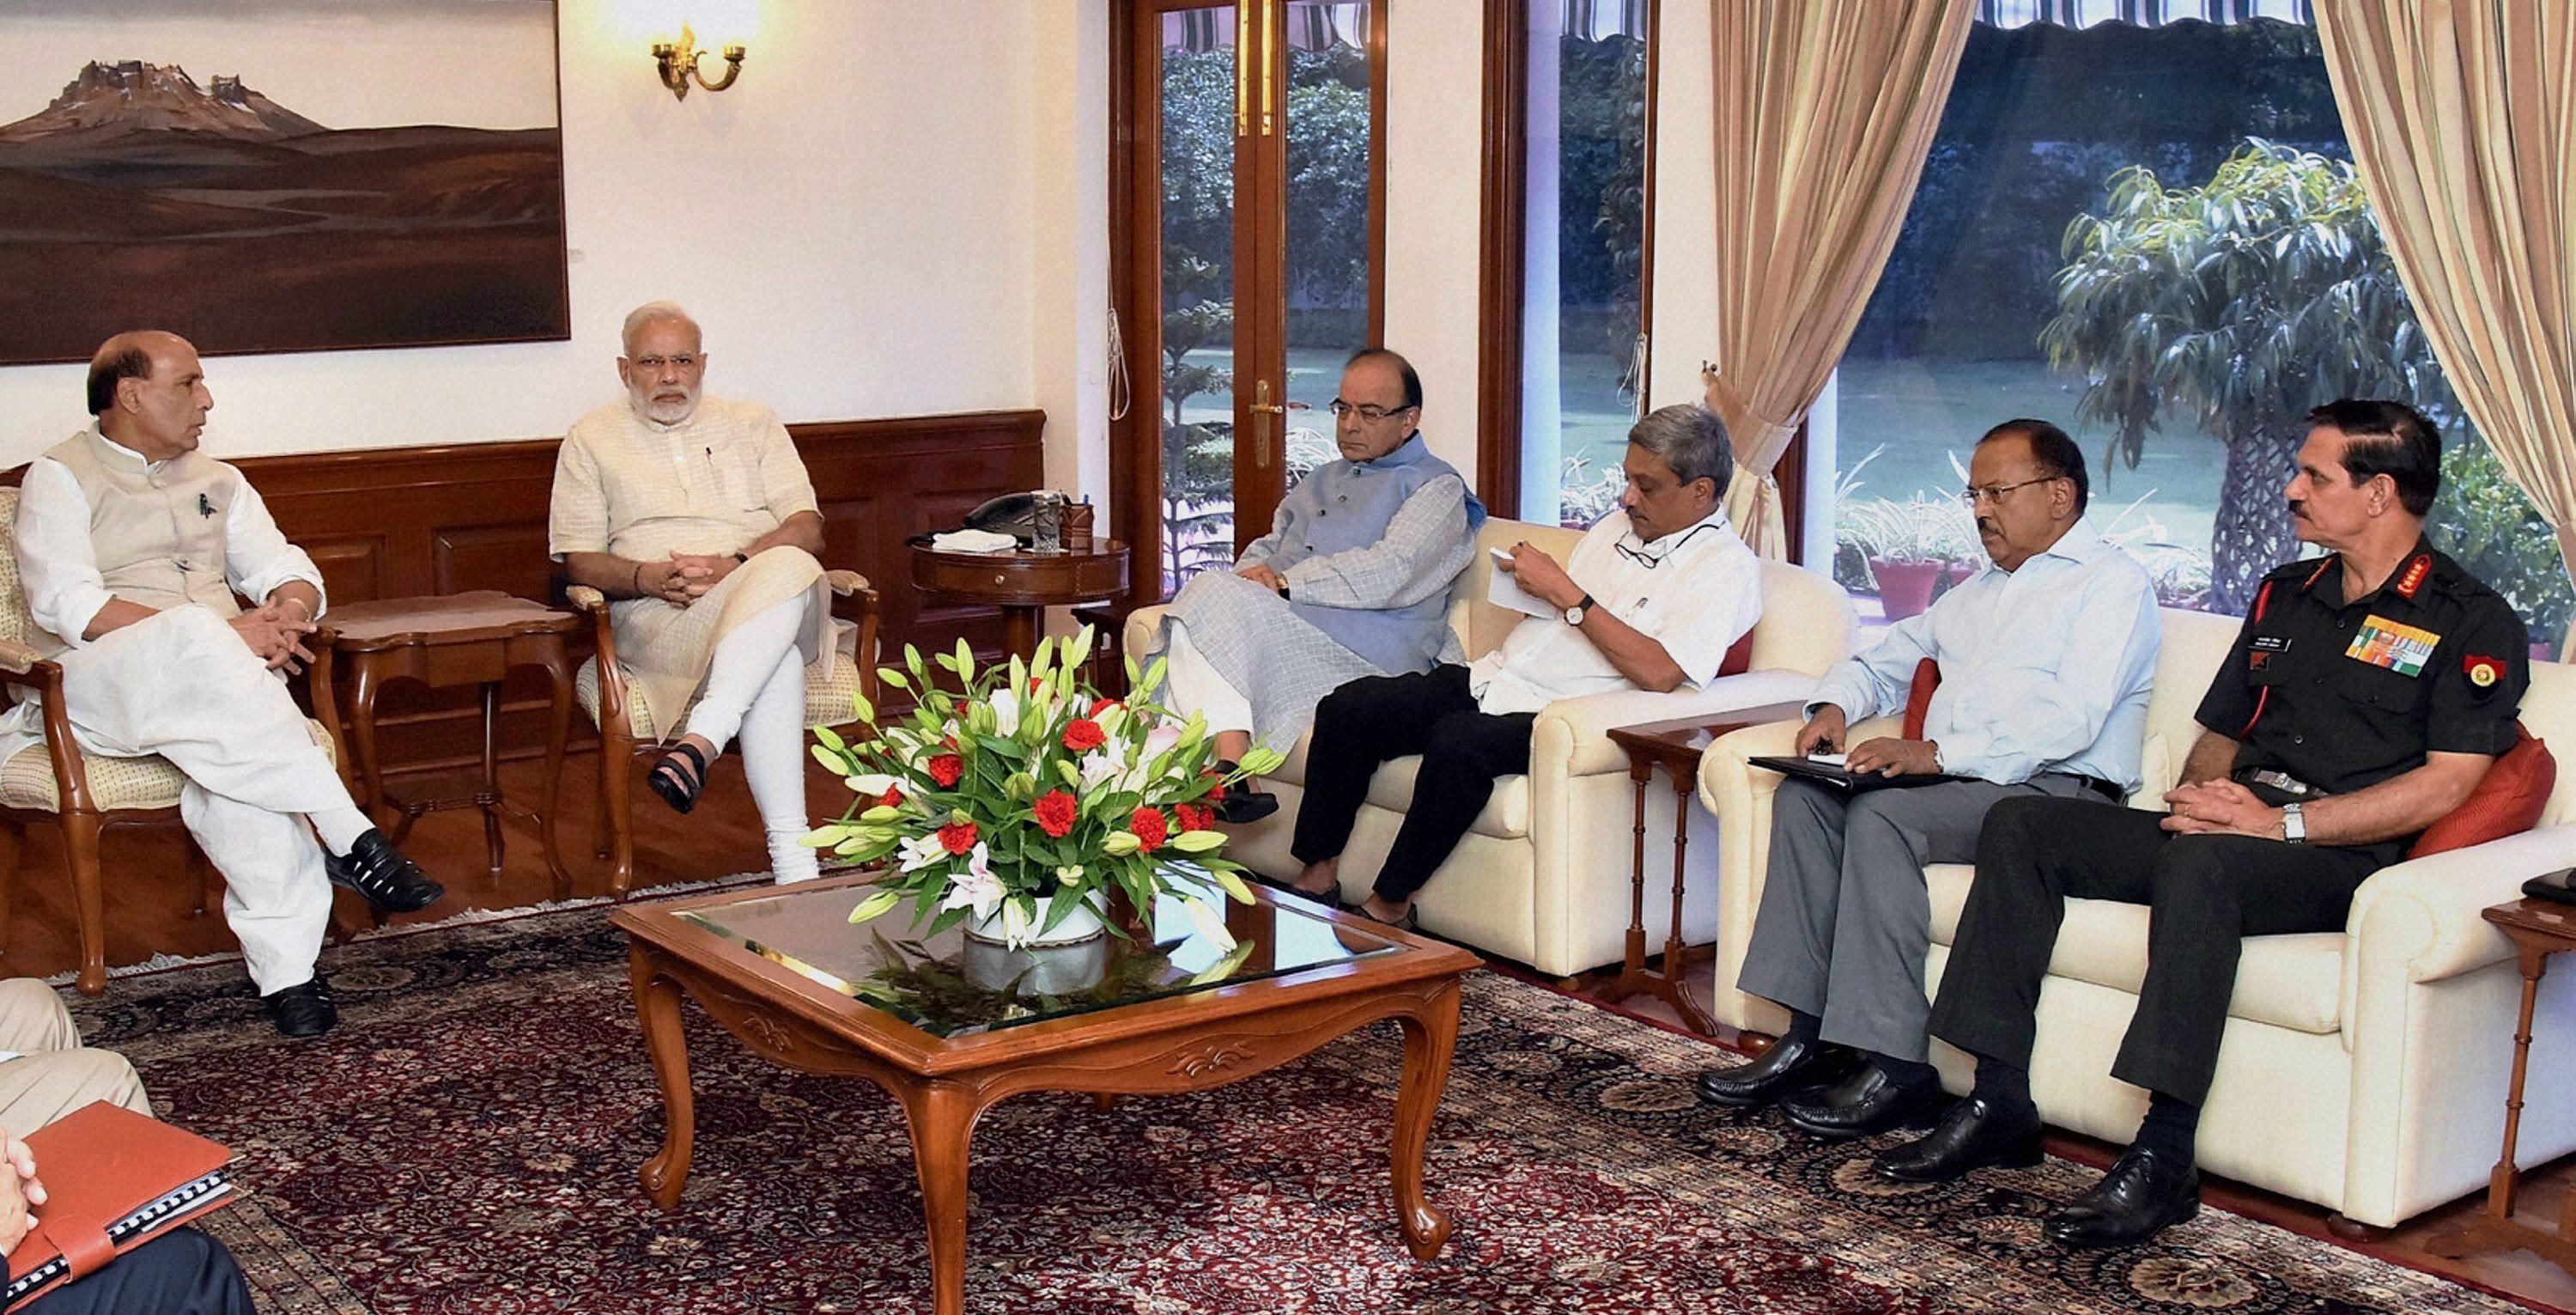 Prime Minister Narendra Modi with home minister Rajnath Singh, finance minister Arun Jaitley, defence minister Manohar Parrikar, NSA Ajit Doval and army chief Gen Dalbir Singh Suhag at a high level meeting in the wake of Uri attack, in New Delhi on Monday. Credit: PTI